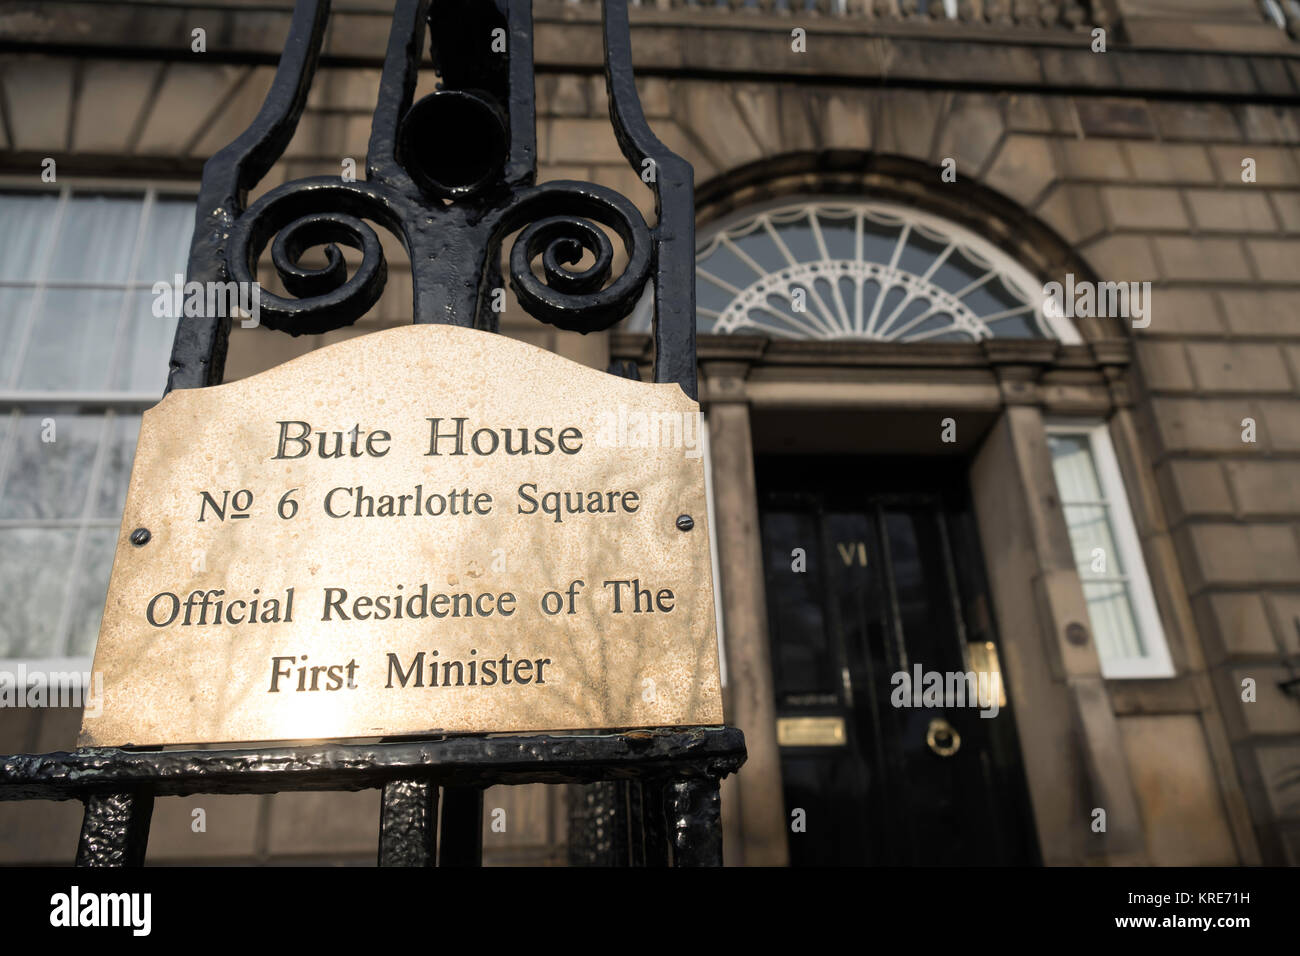 Detail of nameplate at Bute House, official residence of The First Minister of Scotland in Charlotte Square , Edinburgh, - Stock Image